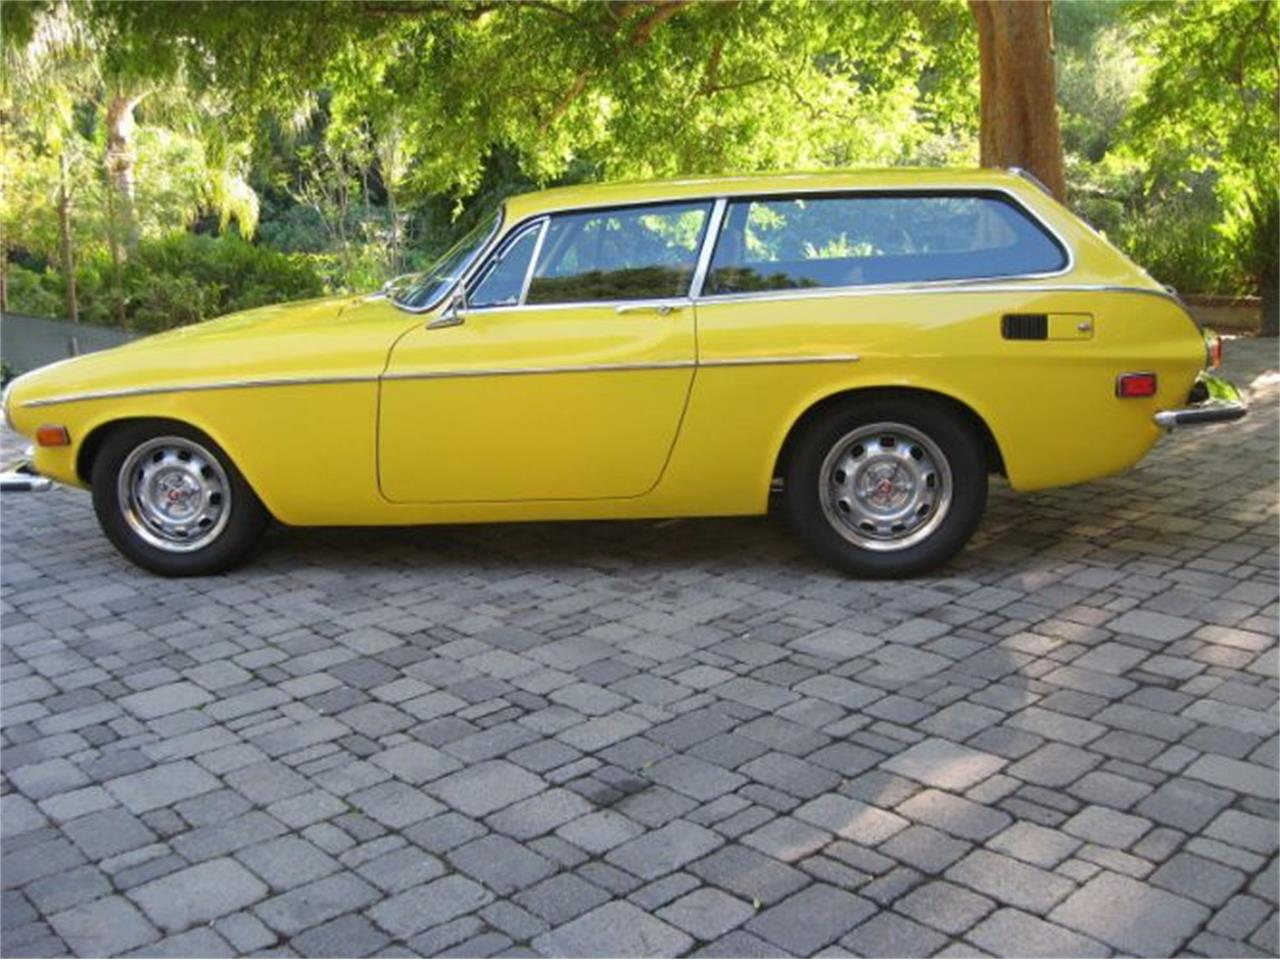 Large Picture of Classic '73 Volvo 1800ES - $25,695.00 Offered by Classic Car Deals - OF4S